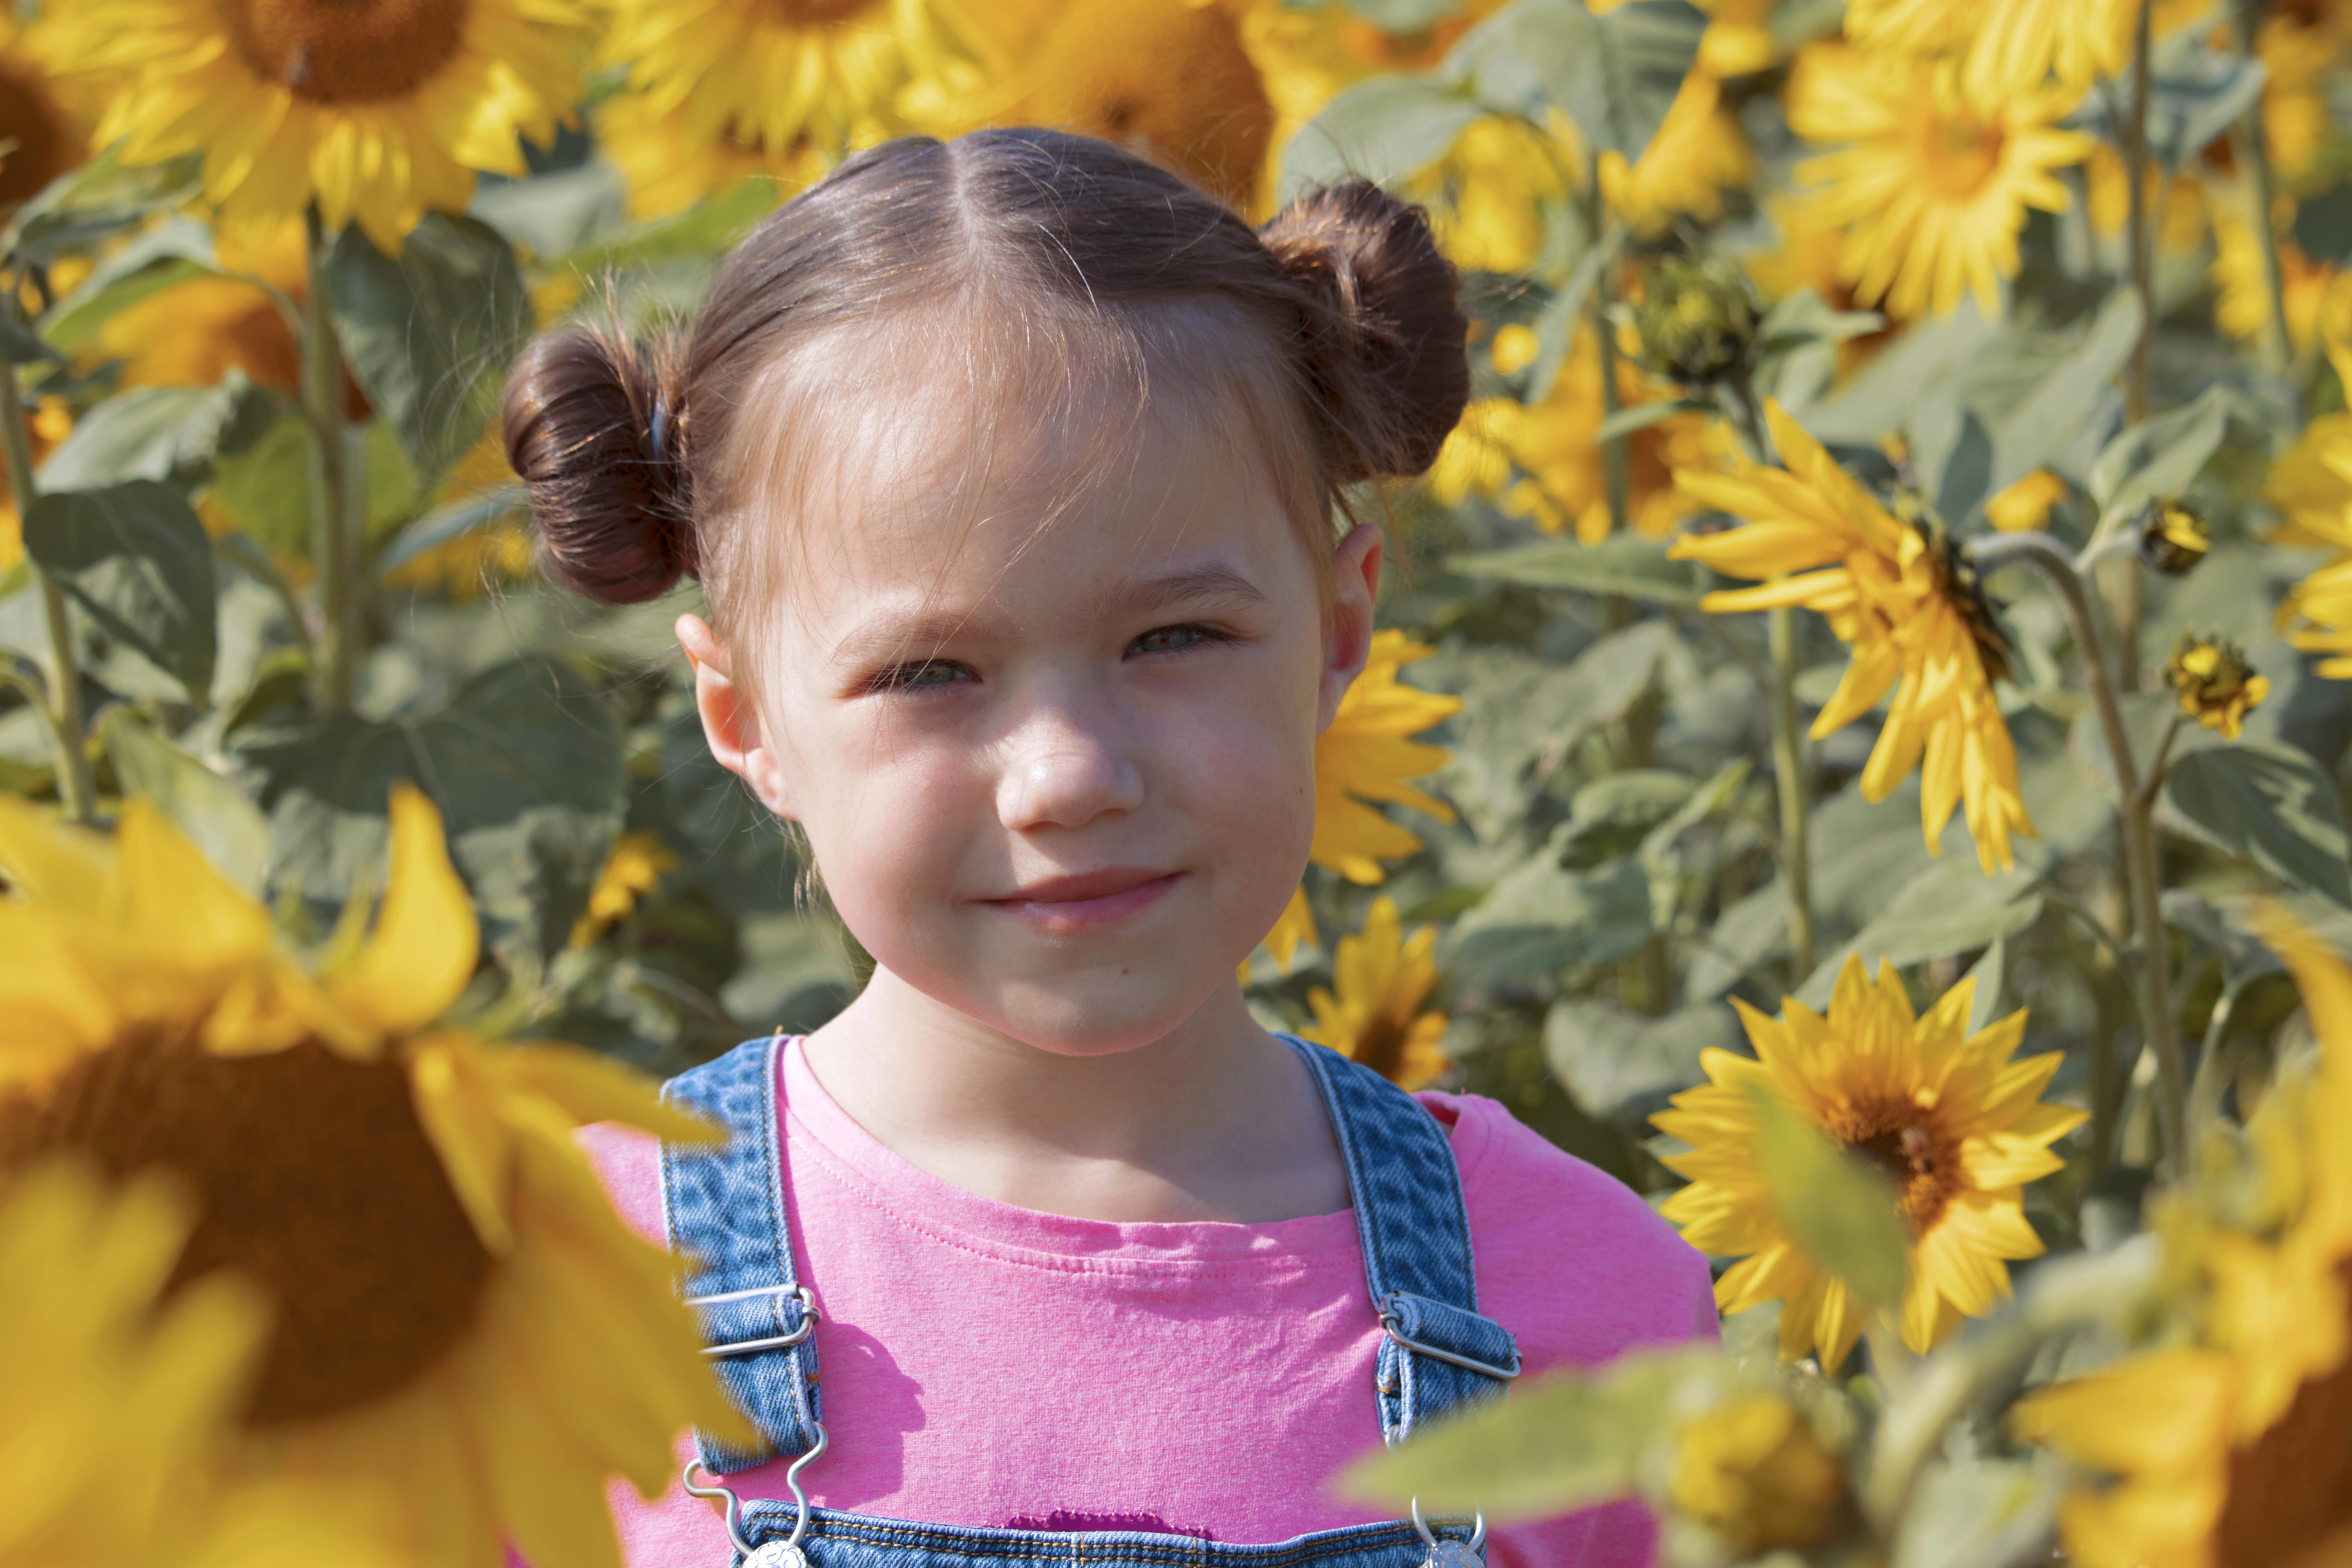 Family Portraits at the Sunflowers